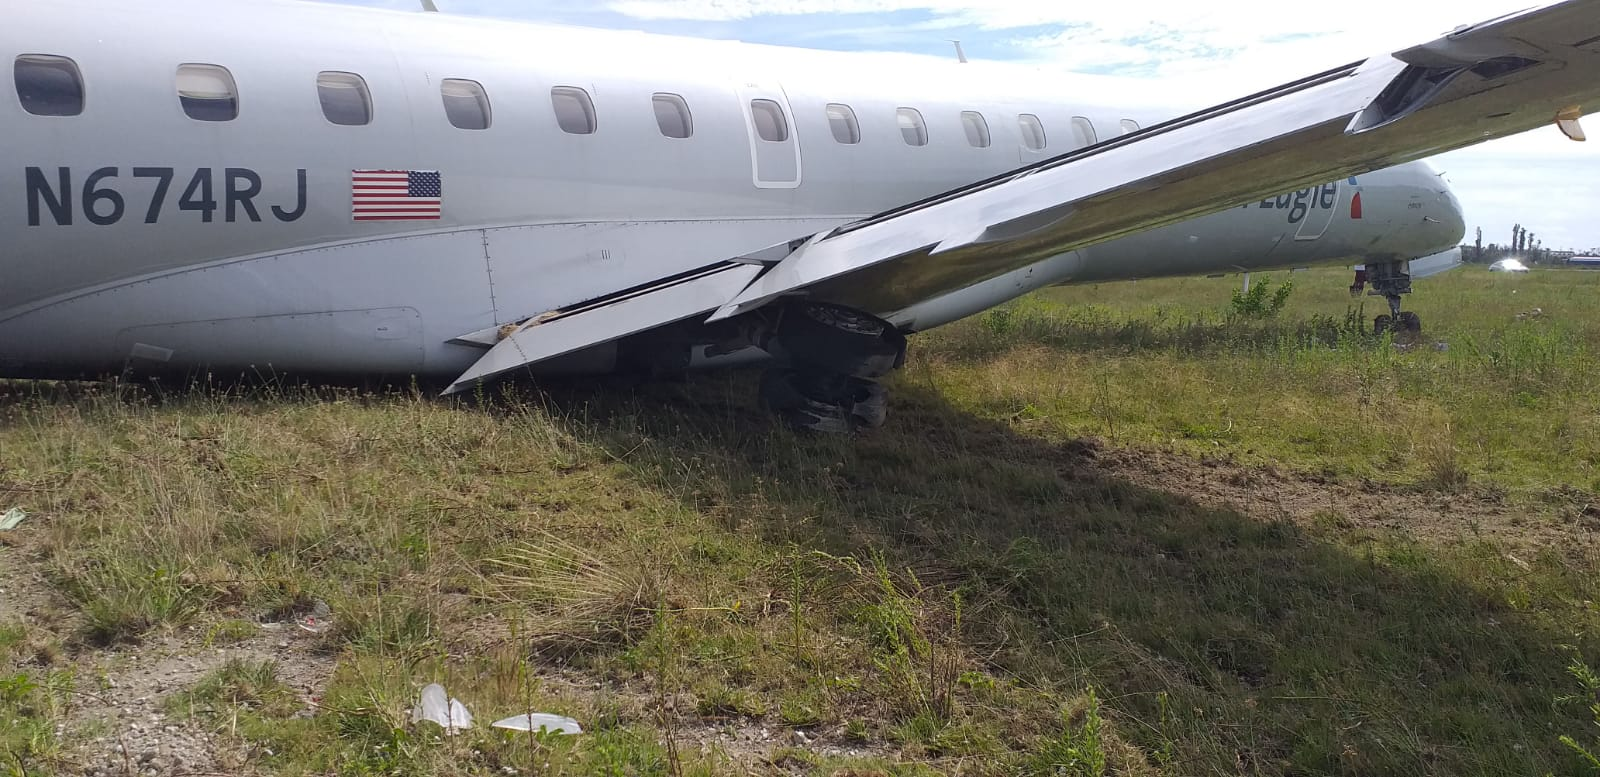 GB airport closed for two days after American Airlines plane skids off runway